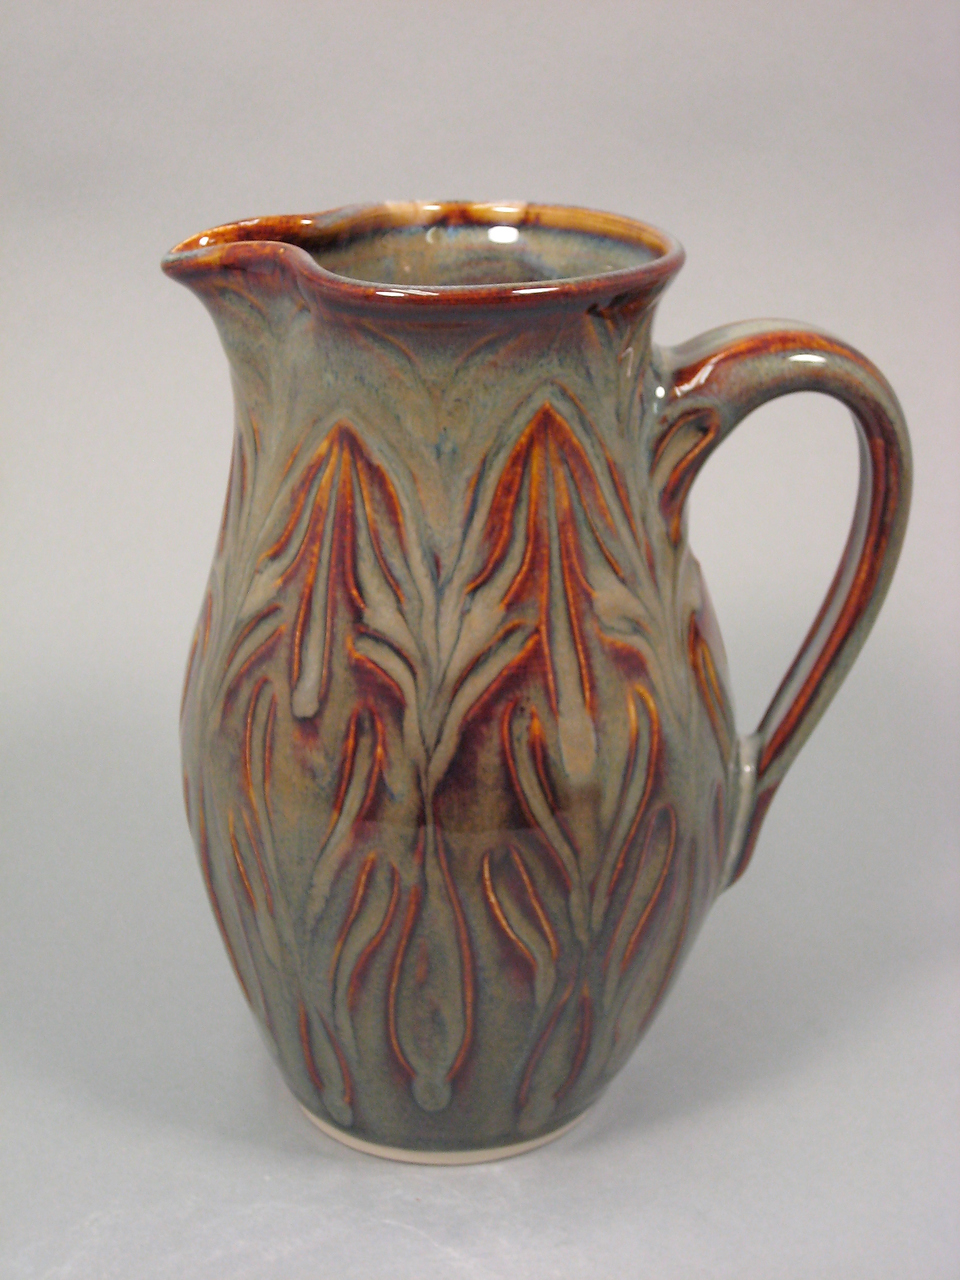 Susan Goldman Ceramics